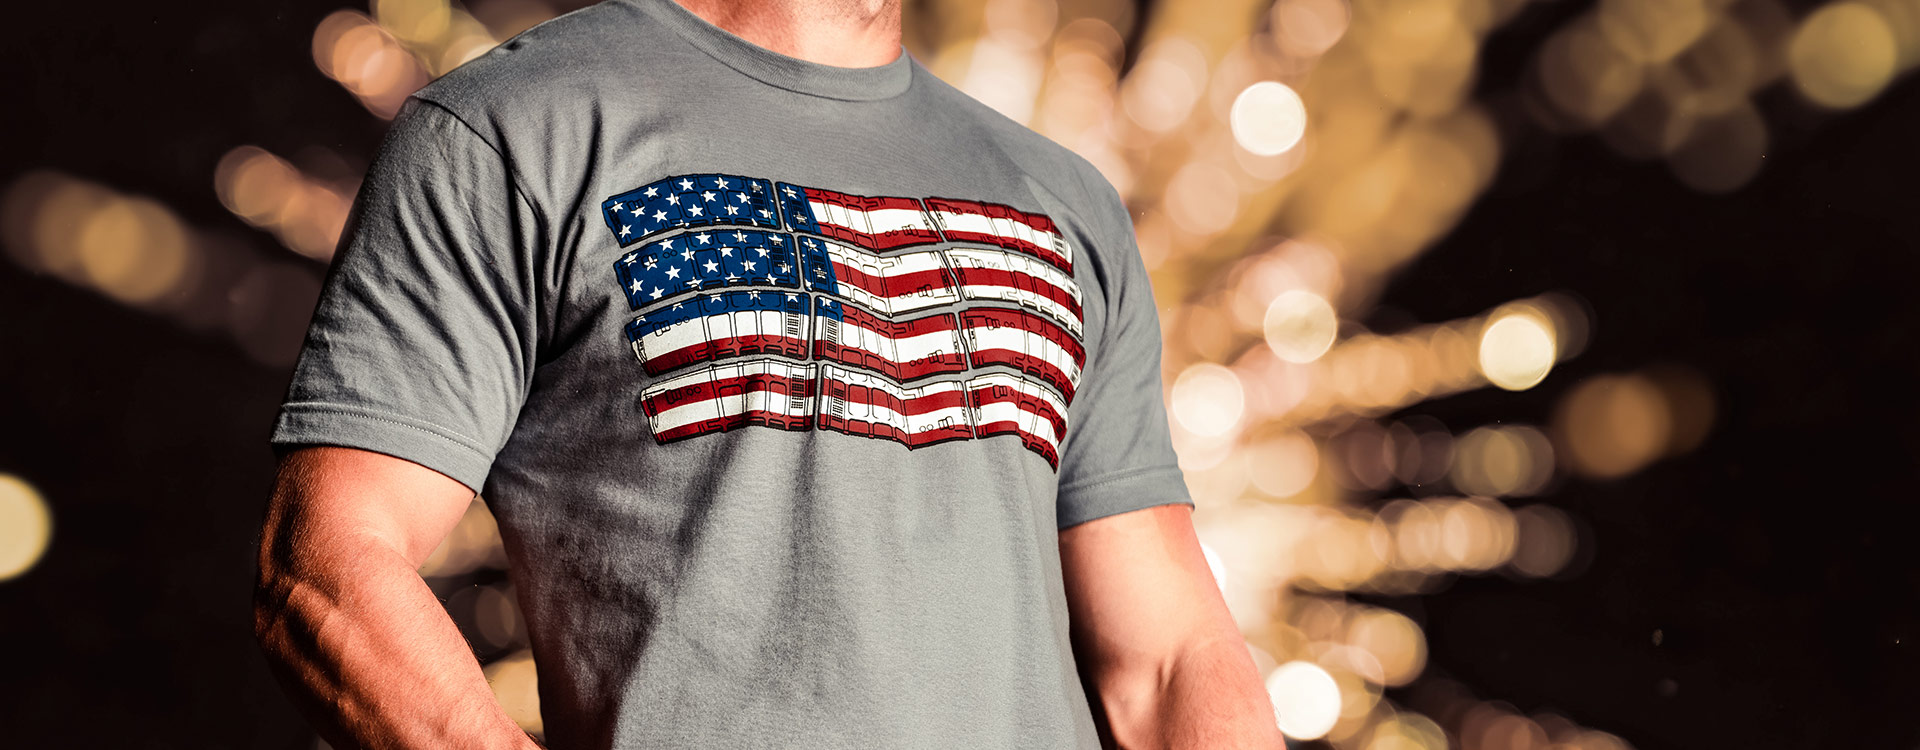 Gray Magpul PFLAG Cotton T-Shirt being worn by man with a firework shell bursting in the background